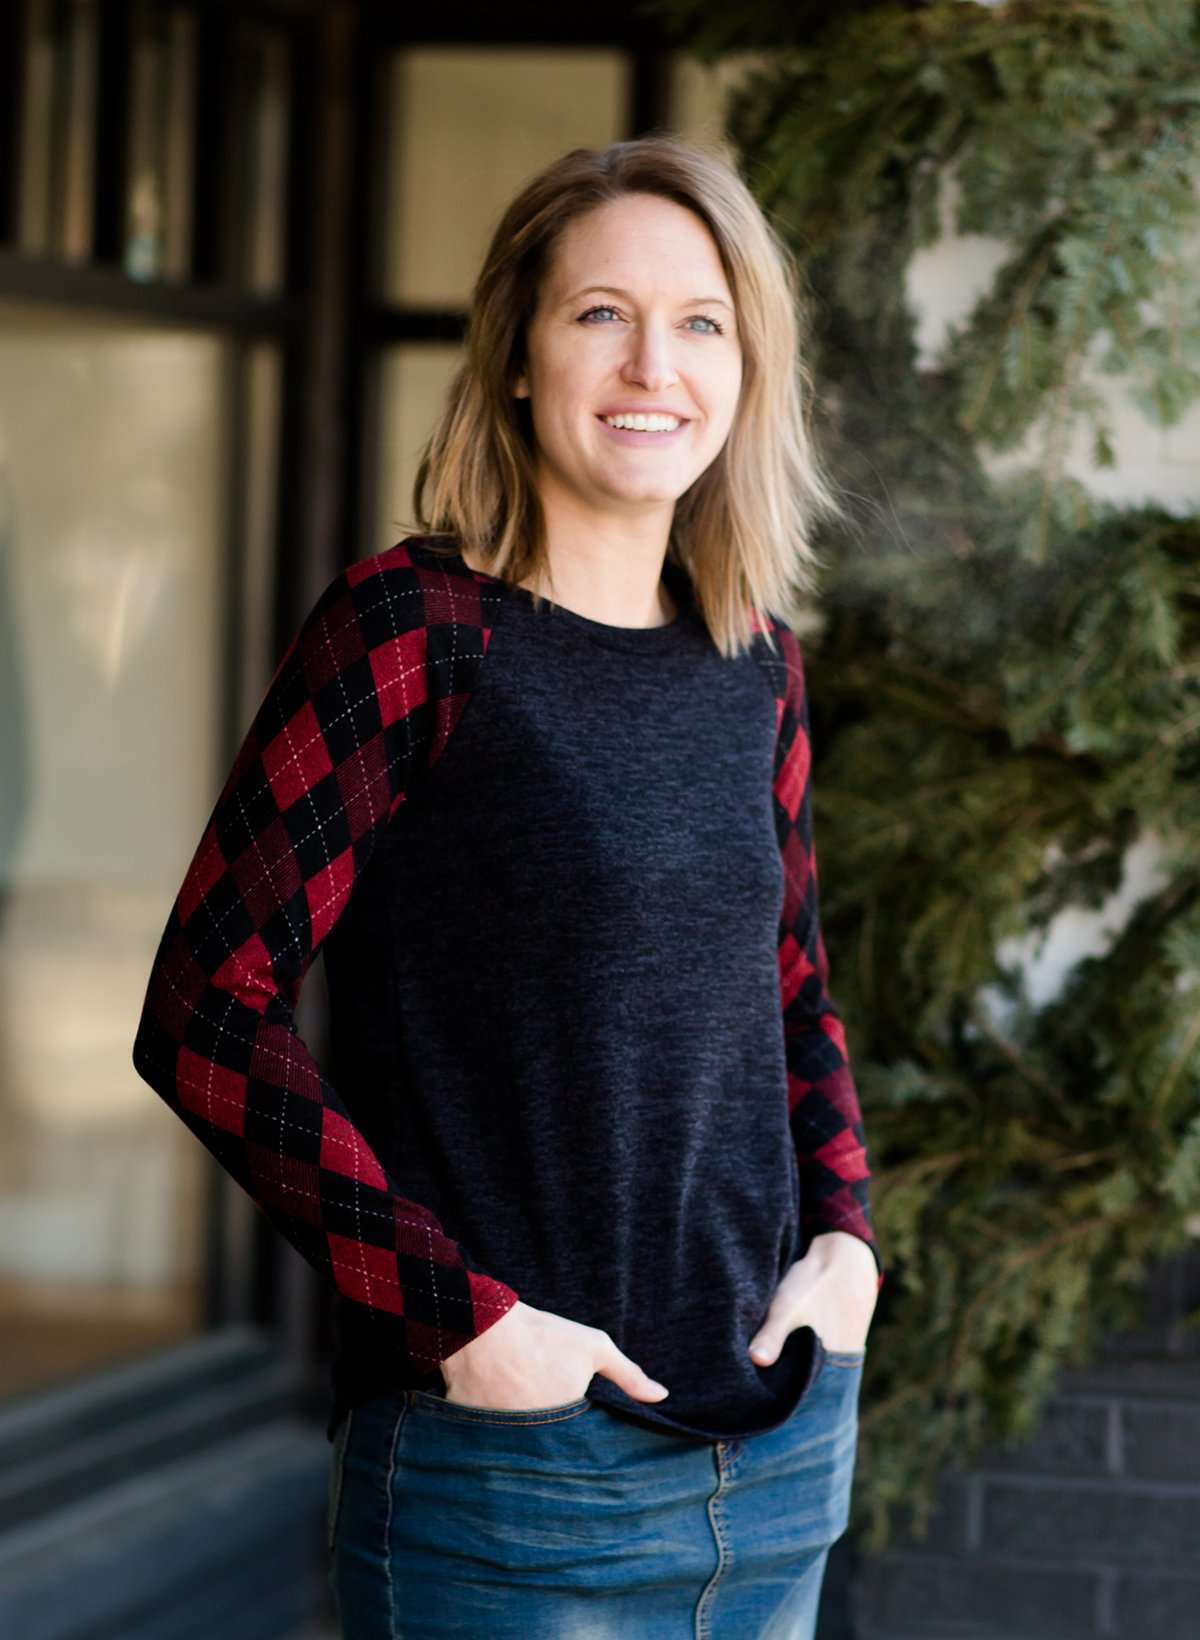 Woman wearing a dark charcoal raglan style top with diamond, argyle checks that are black and red. She is standing outside of Inherit Clothing Company.